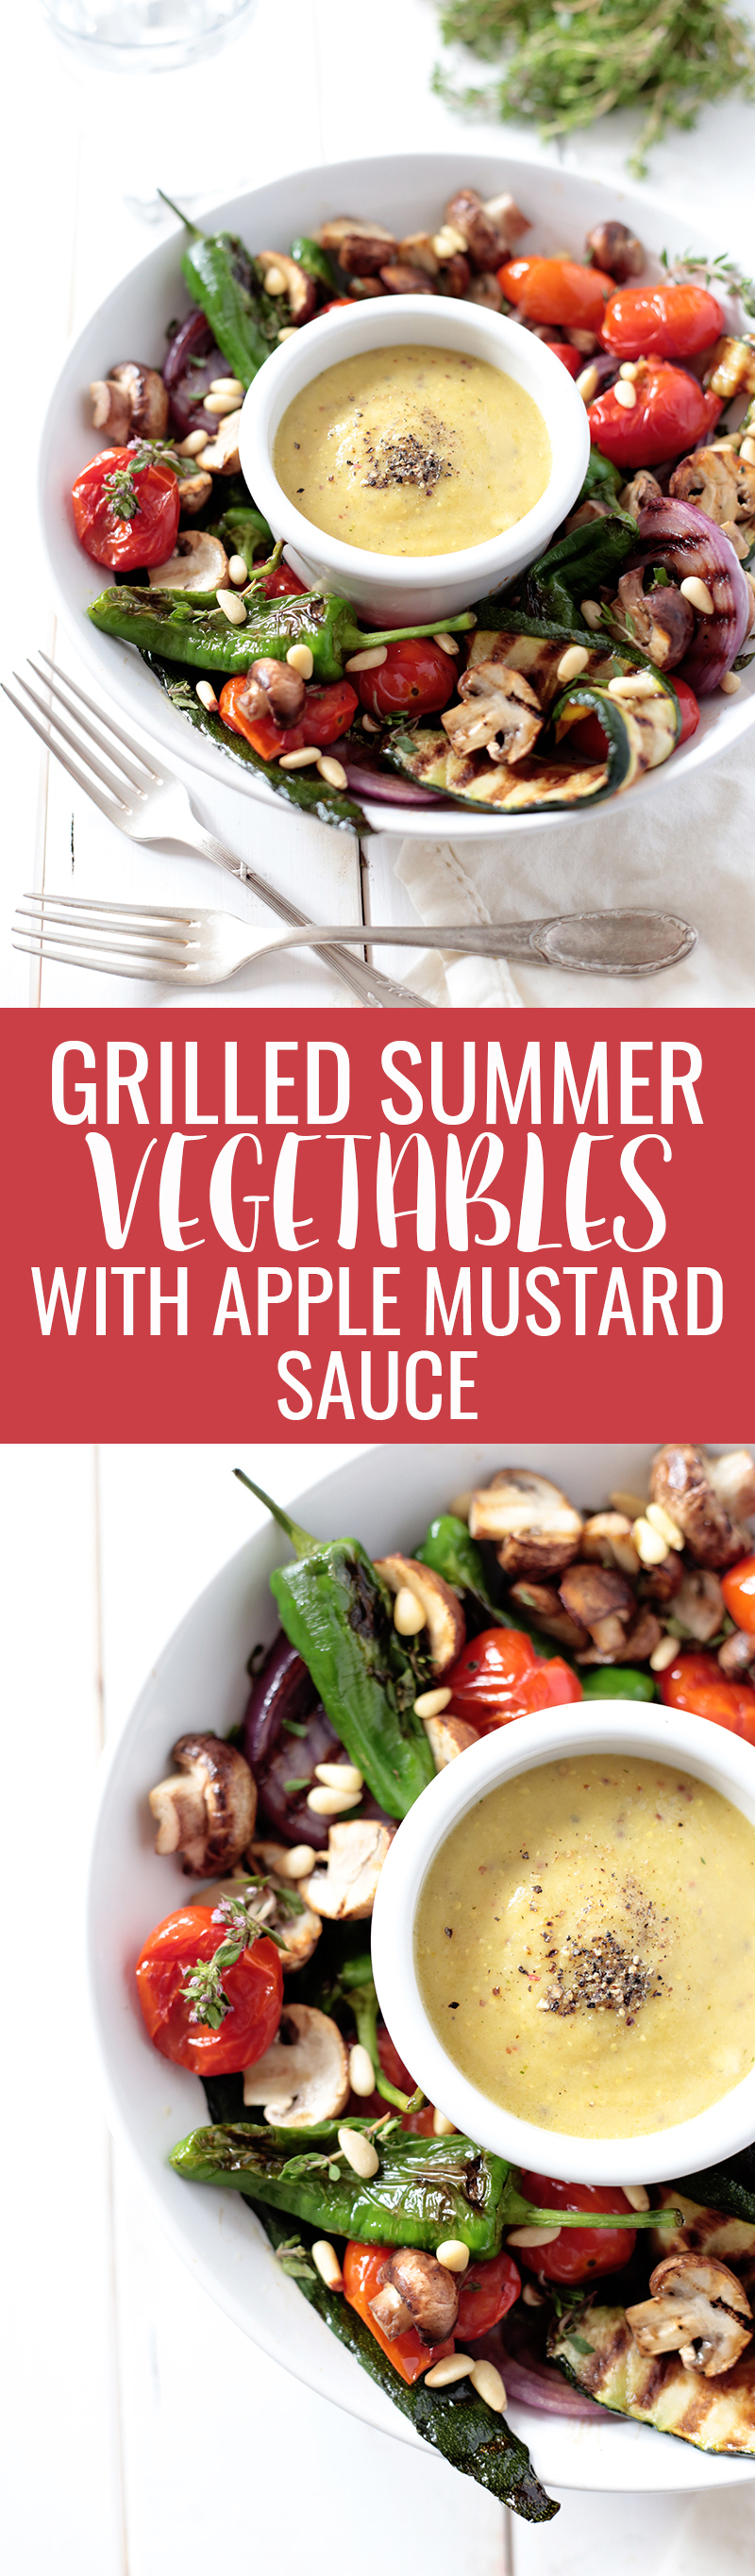 Grilled Summer Vegetables with Apple Mustard Sauce